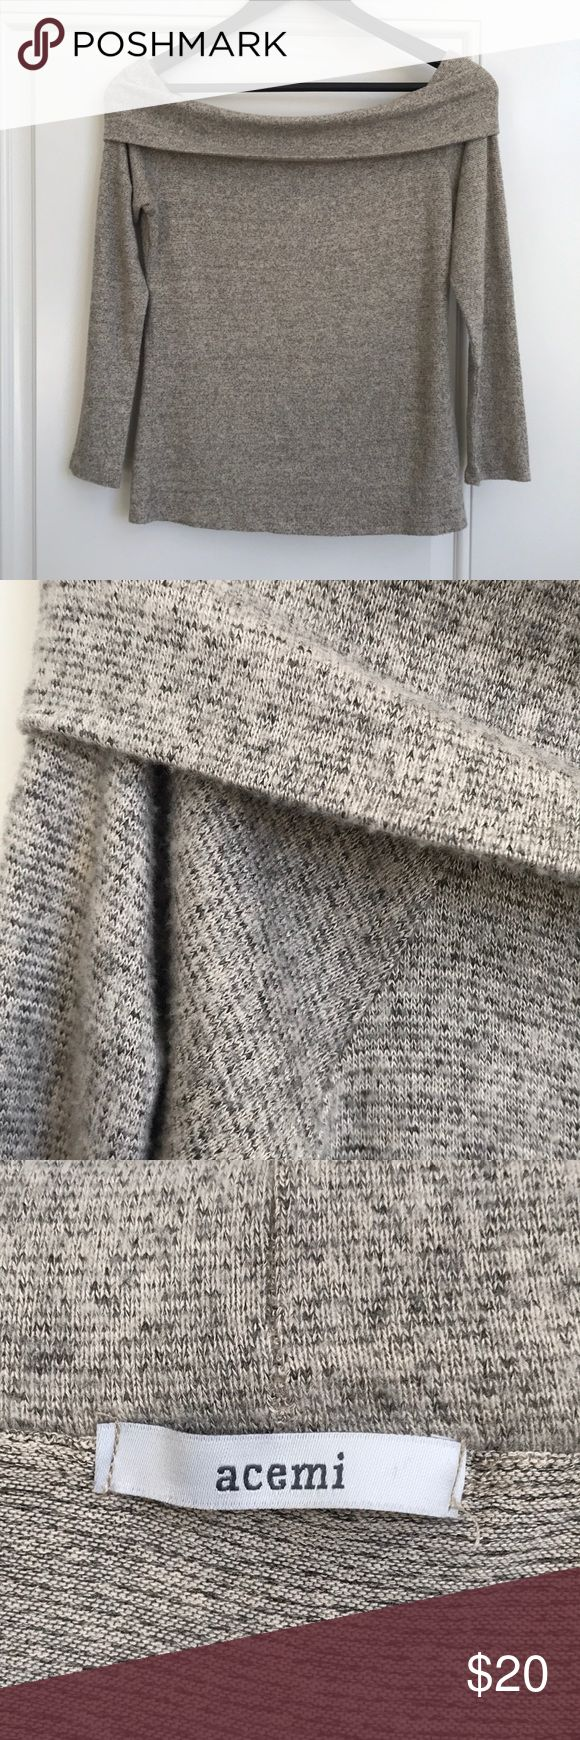 Acemi Bardot sweater size small Off the shoulder Bardot sweater. Beige/cream/tan blend of micro stripes. Very gently used, only worn twice. Soft, warm, light weight material. Fold over top is adjustable. Still has hanger straps attached. Acemi Sweaters